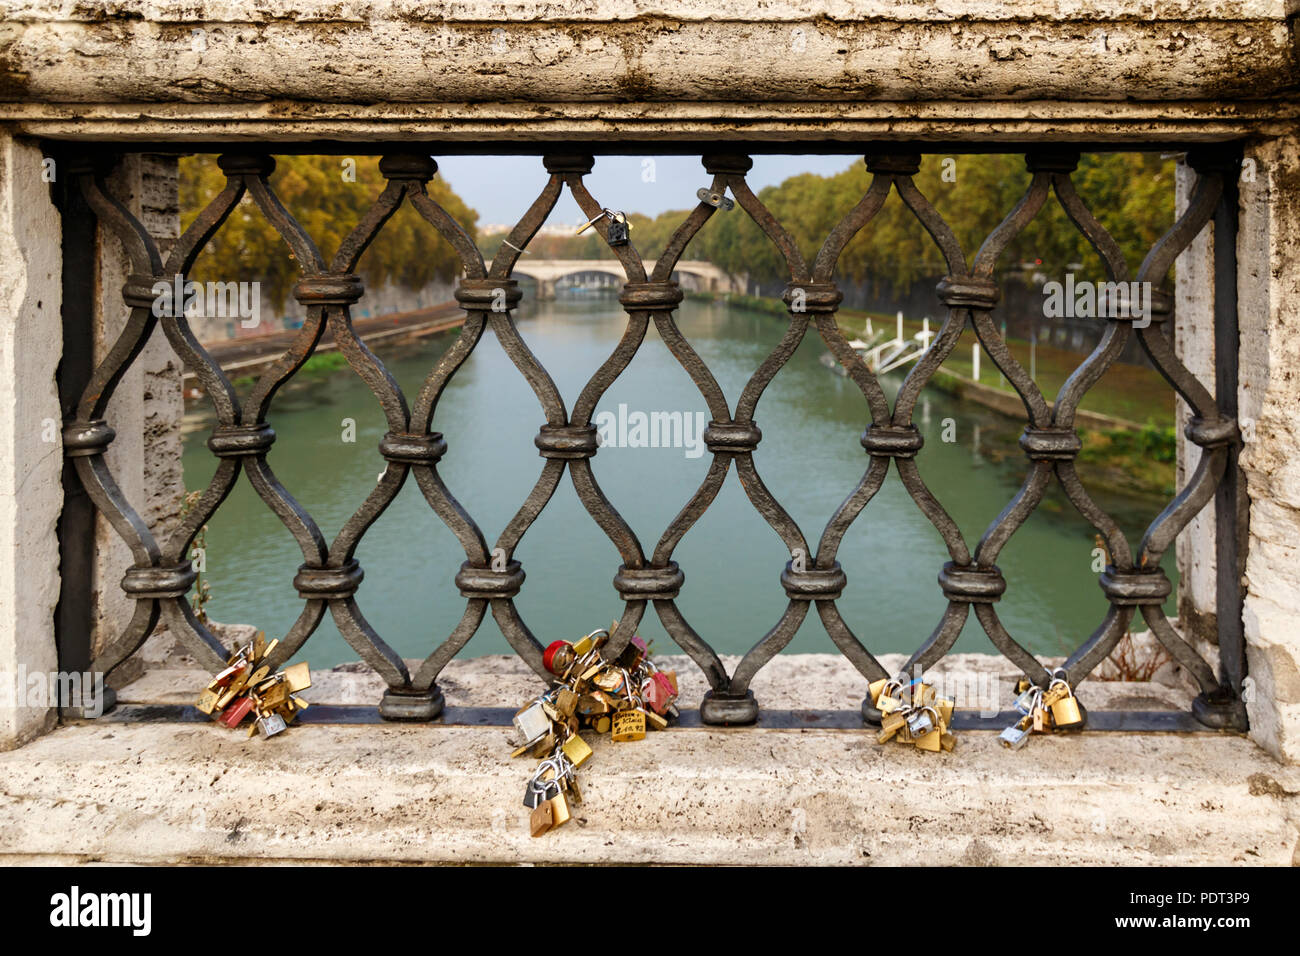 Lovers tie their love forever with the padlocks at St. Angelo's Bridge in Rome, Italy. - Stock Image